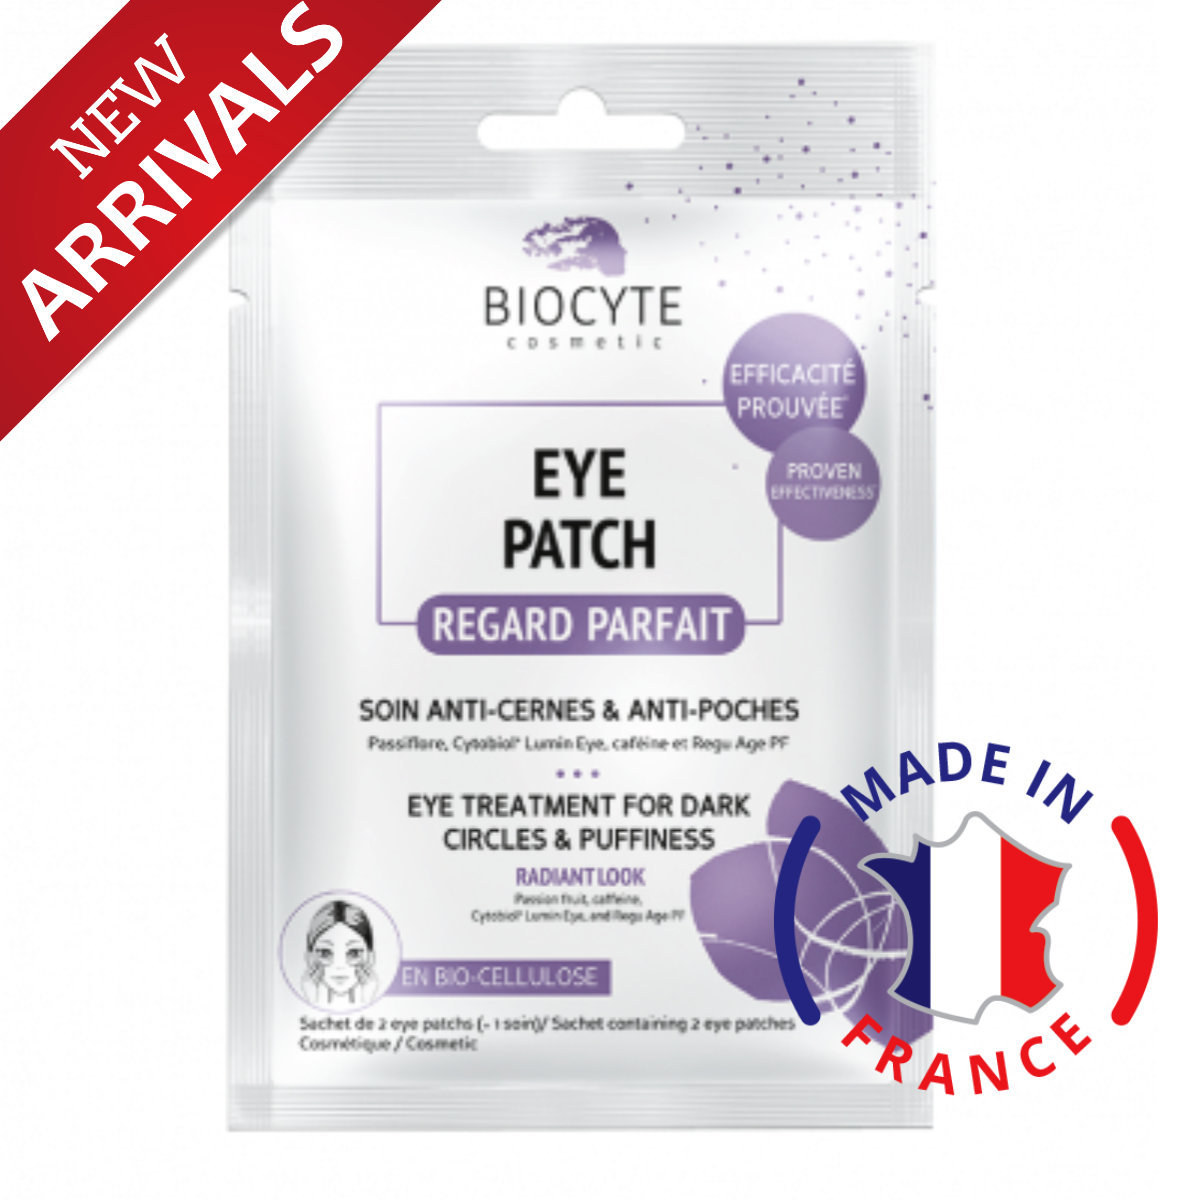 Eye Patch for Dark Circle & Puffiness [made in France]